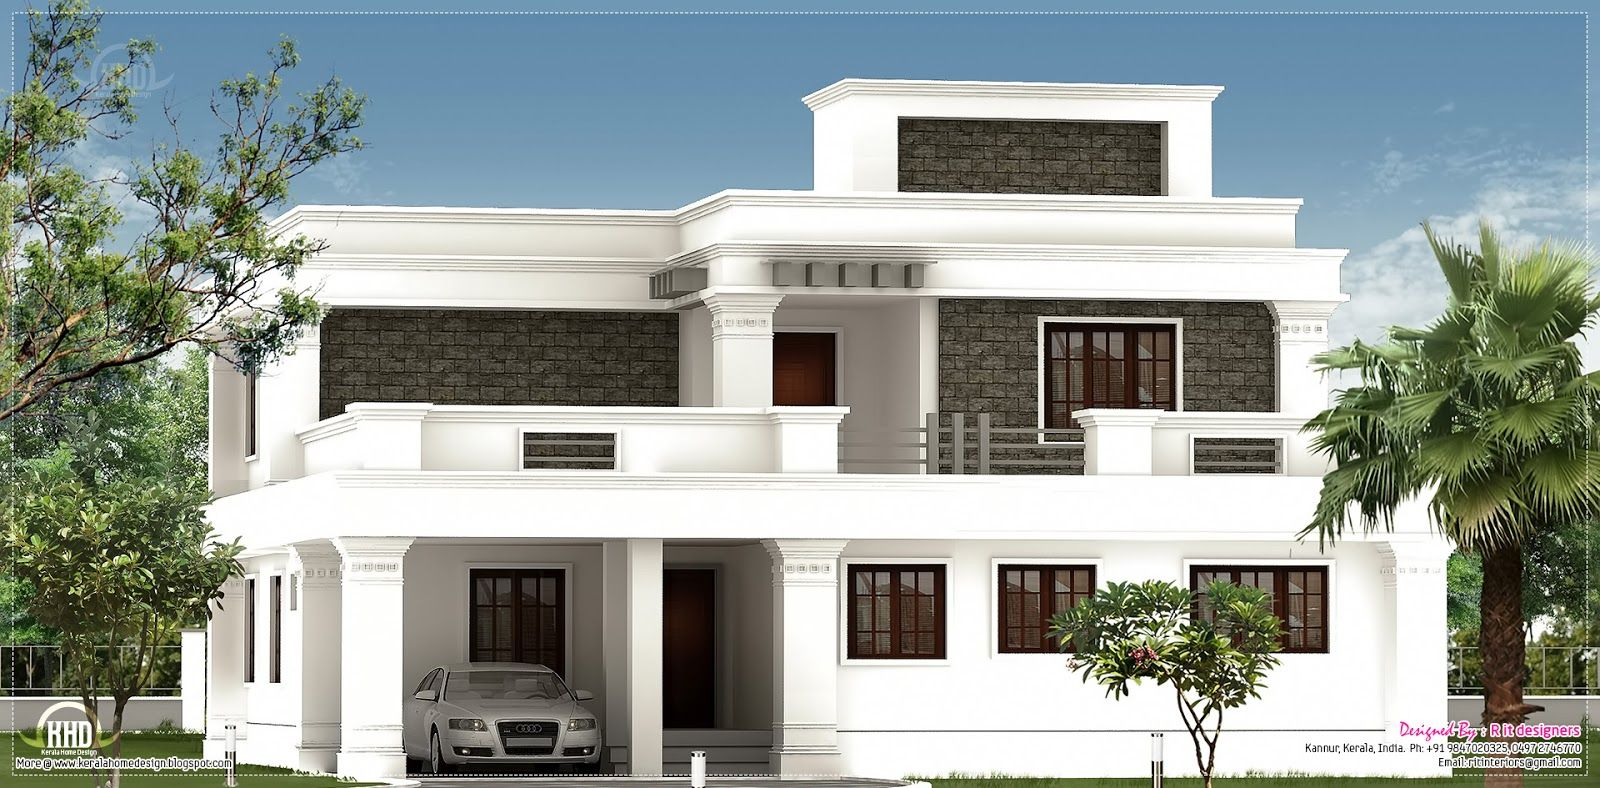 Flat roof homes designs flat roof villa exterior in 2400 for Home front design photo